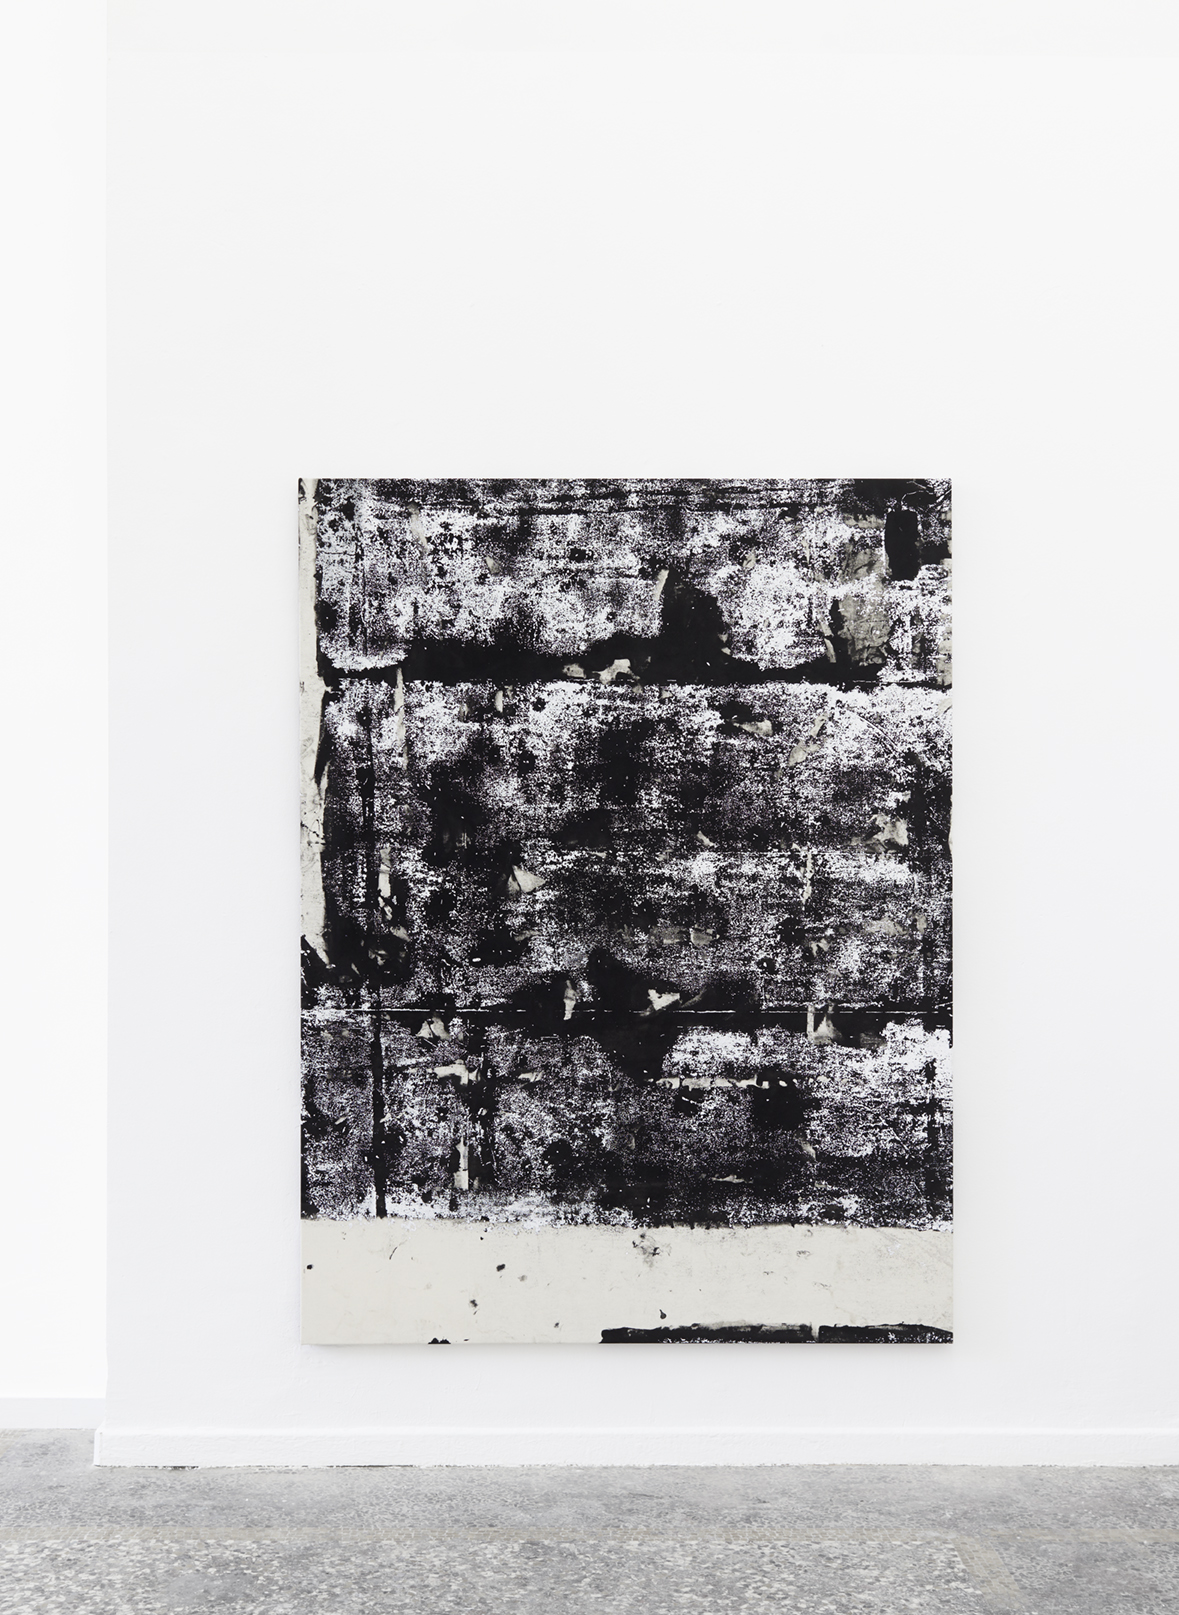 Laura Sachs, Constellation II, 240 x 180 cm, Ink, Dust and Acrylic on Canvas, 2018